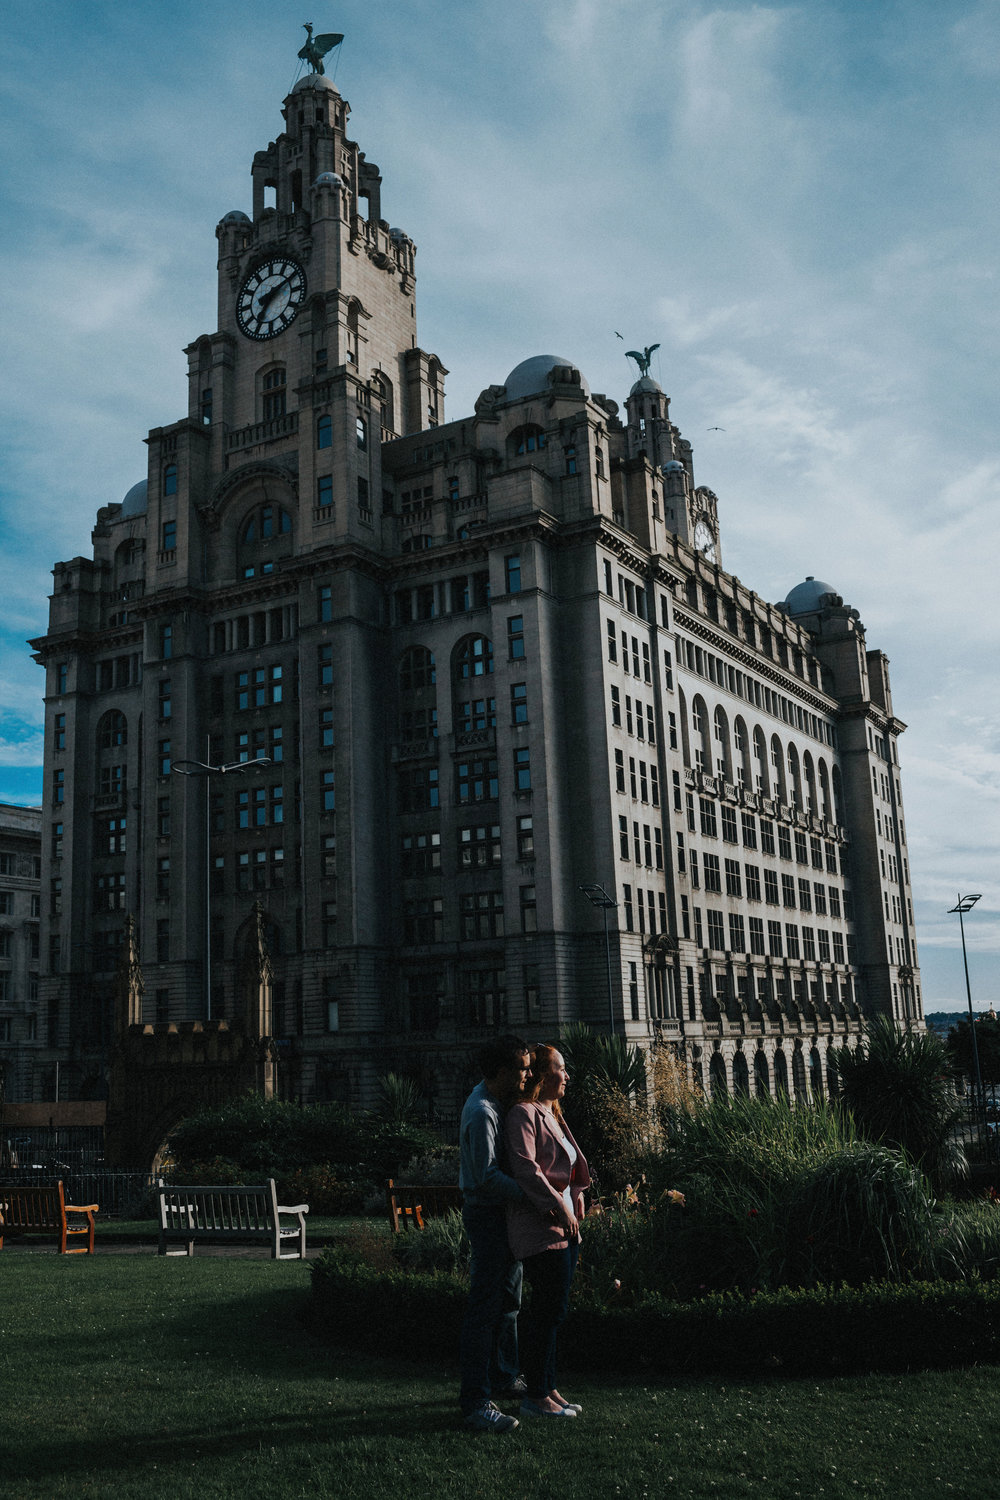 Sun hits couple in front of Liver Buildings